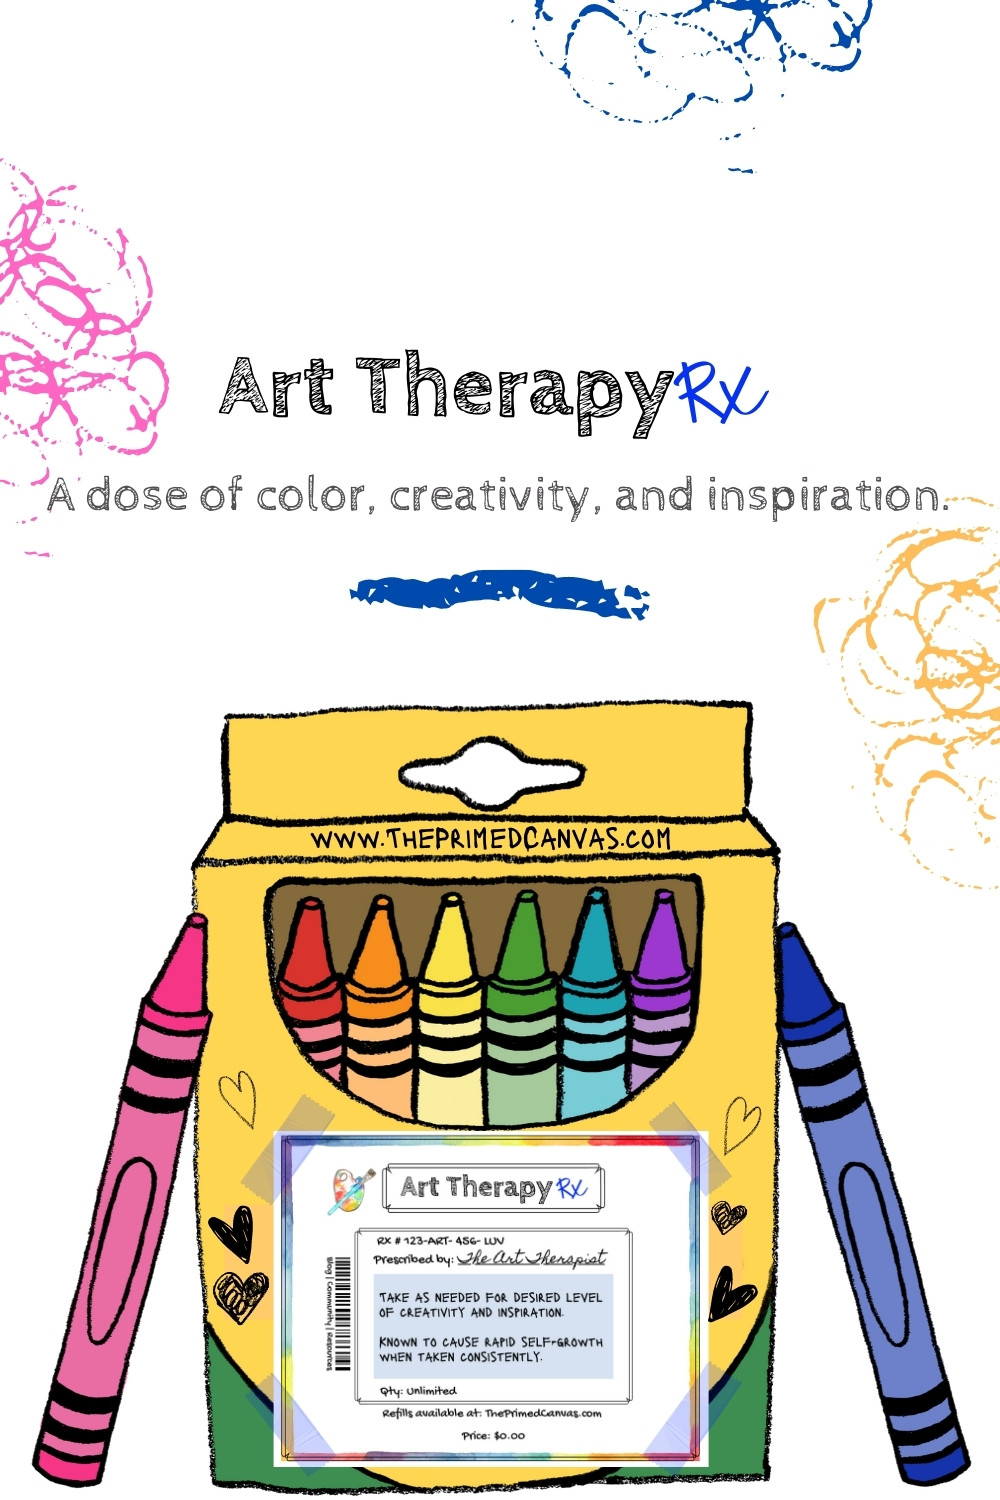 Art Therapy Rx blog post on art therapy directives.